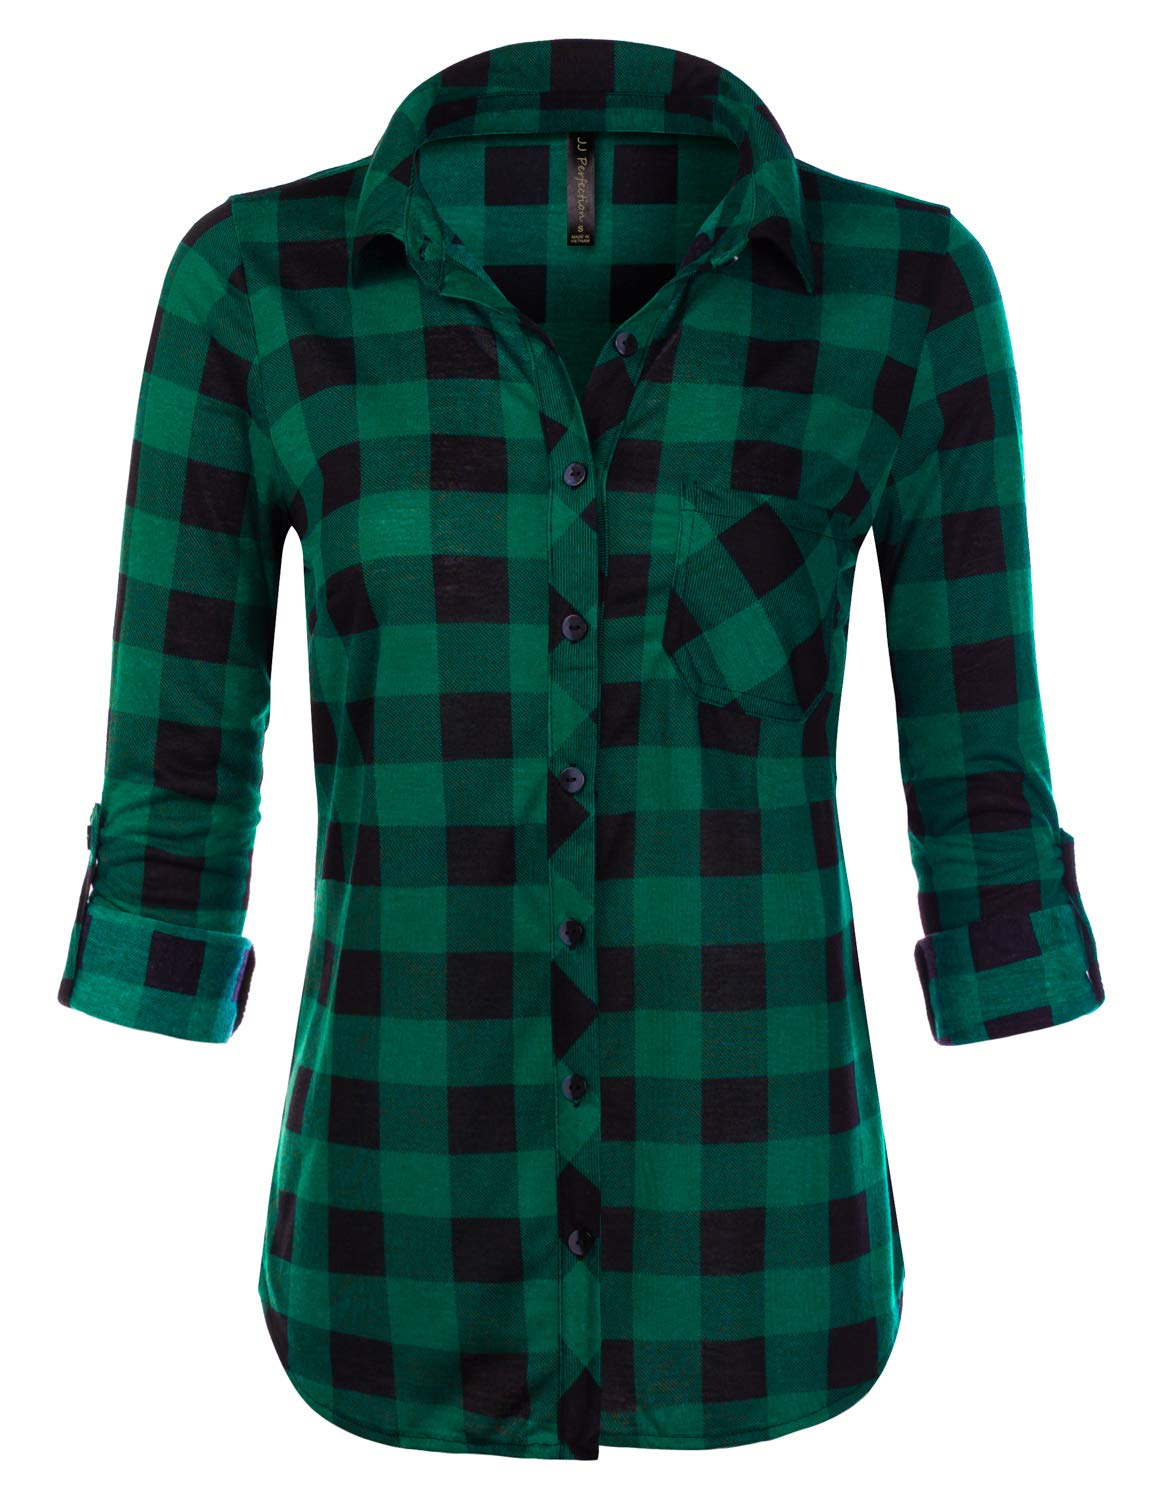 JJ Perfection Womens Long Sleeve Collared Button Down Plaid Flannel Shirt GREENBLACK L